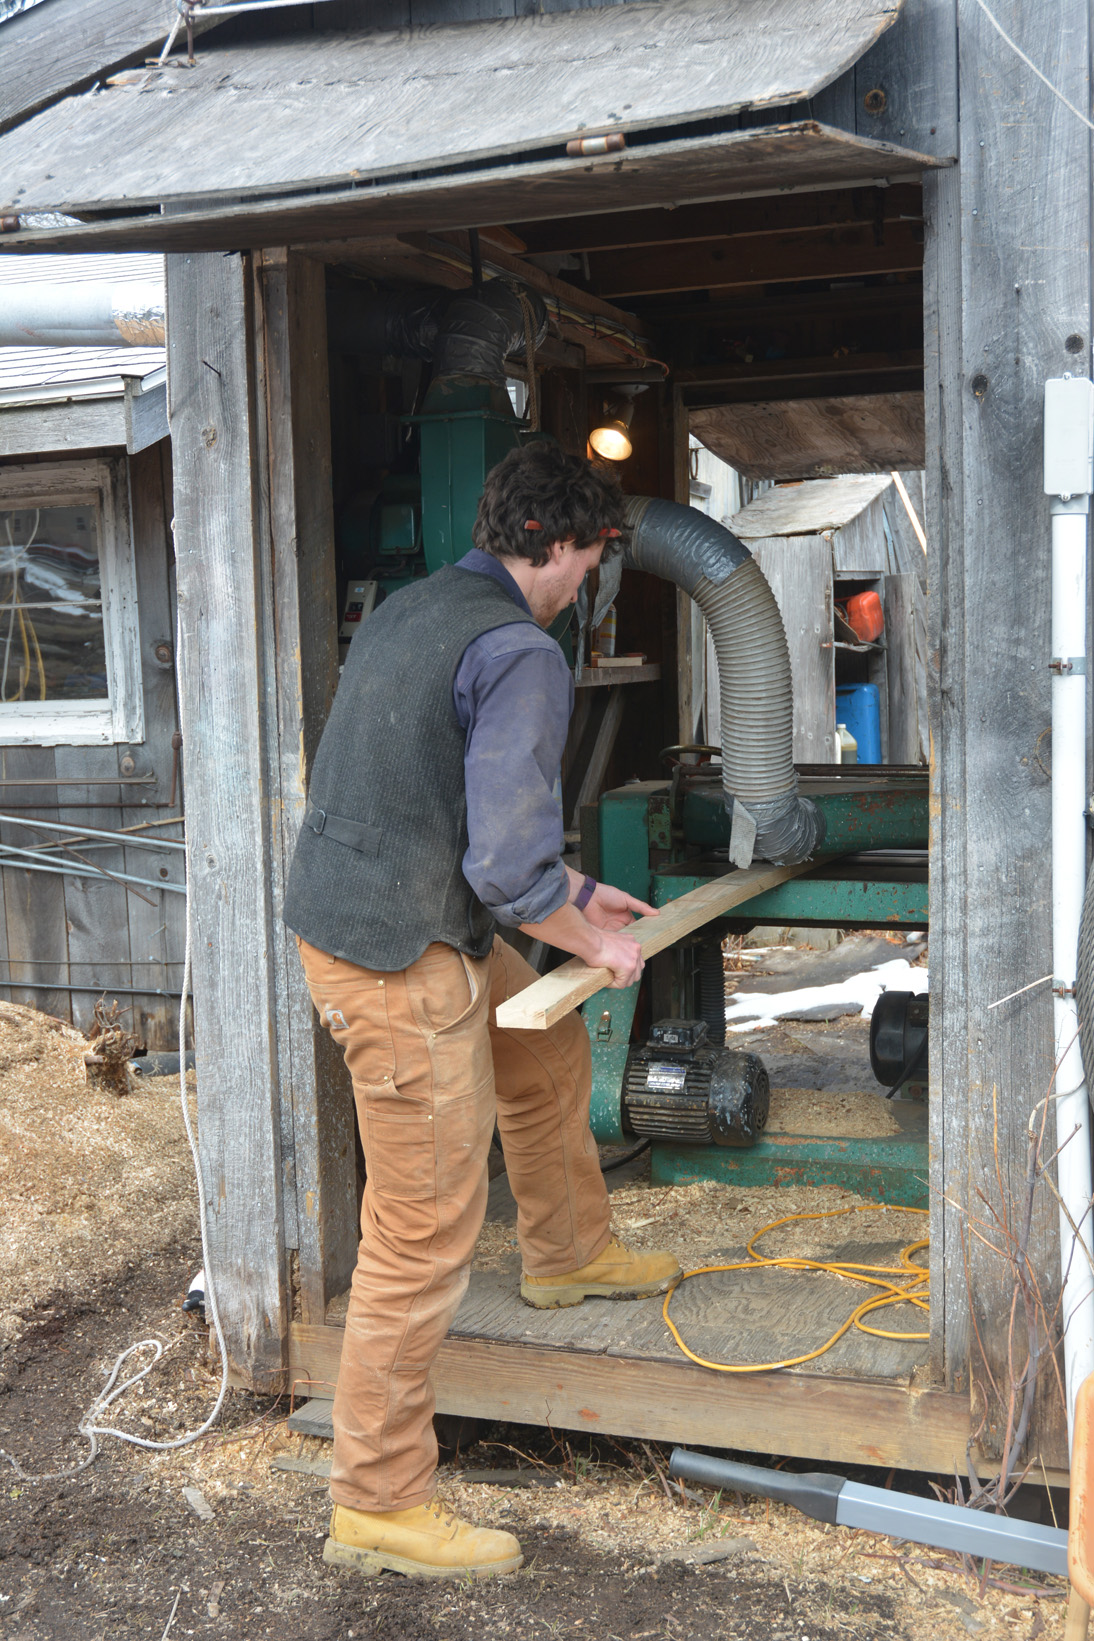 Alden feeing a plank into the planer.